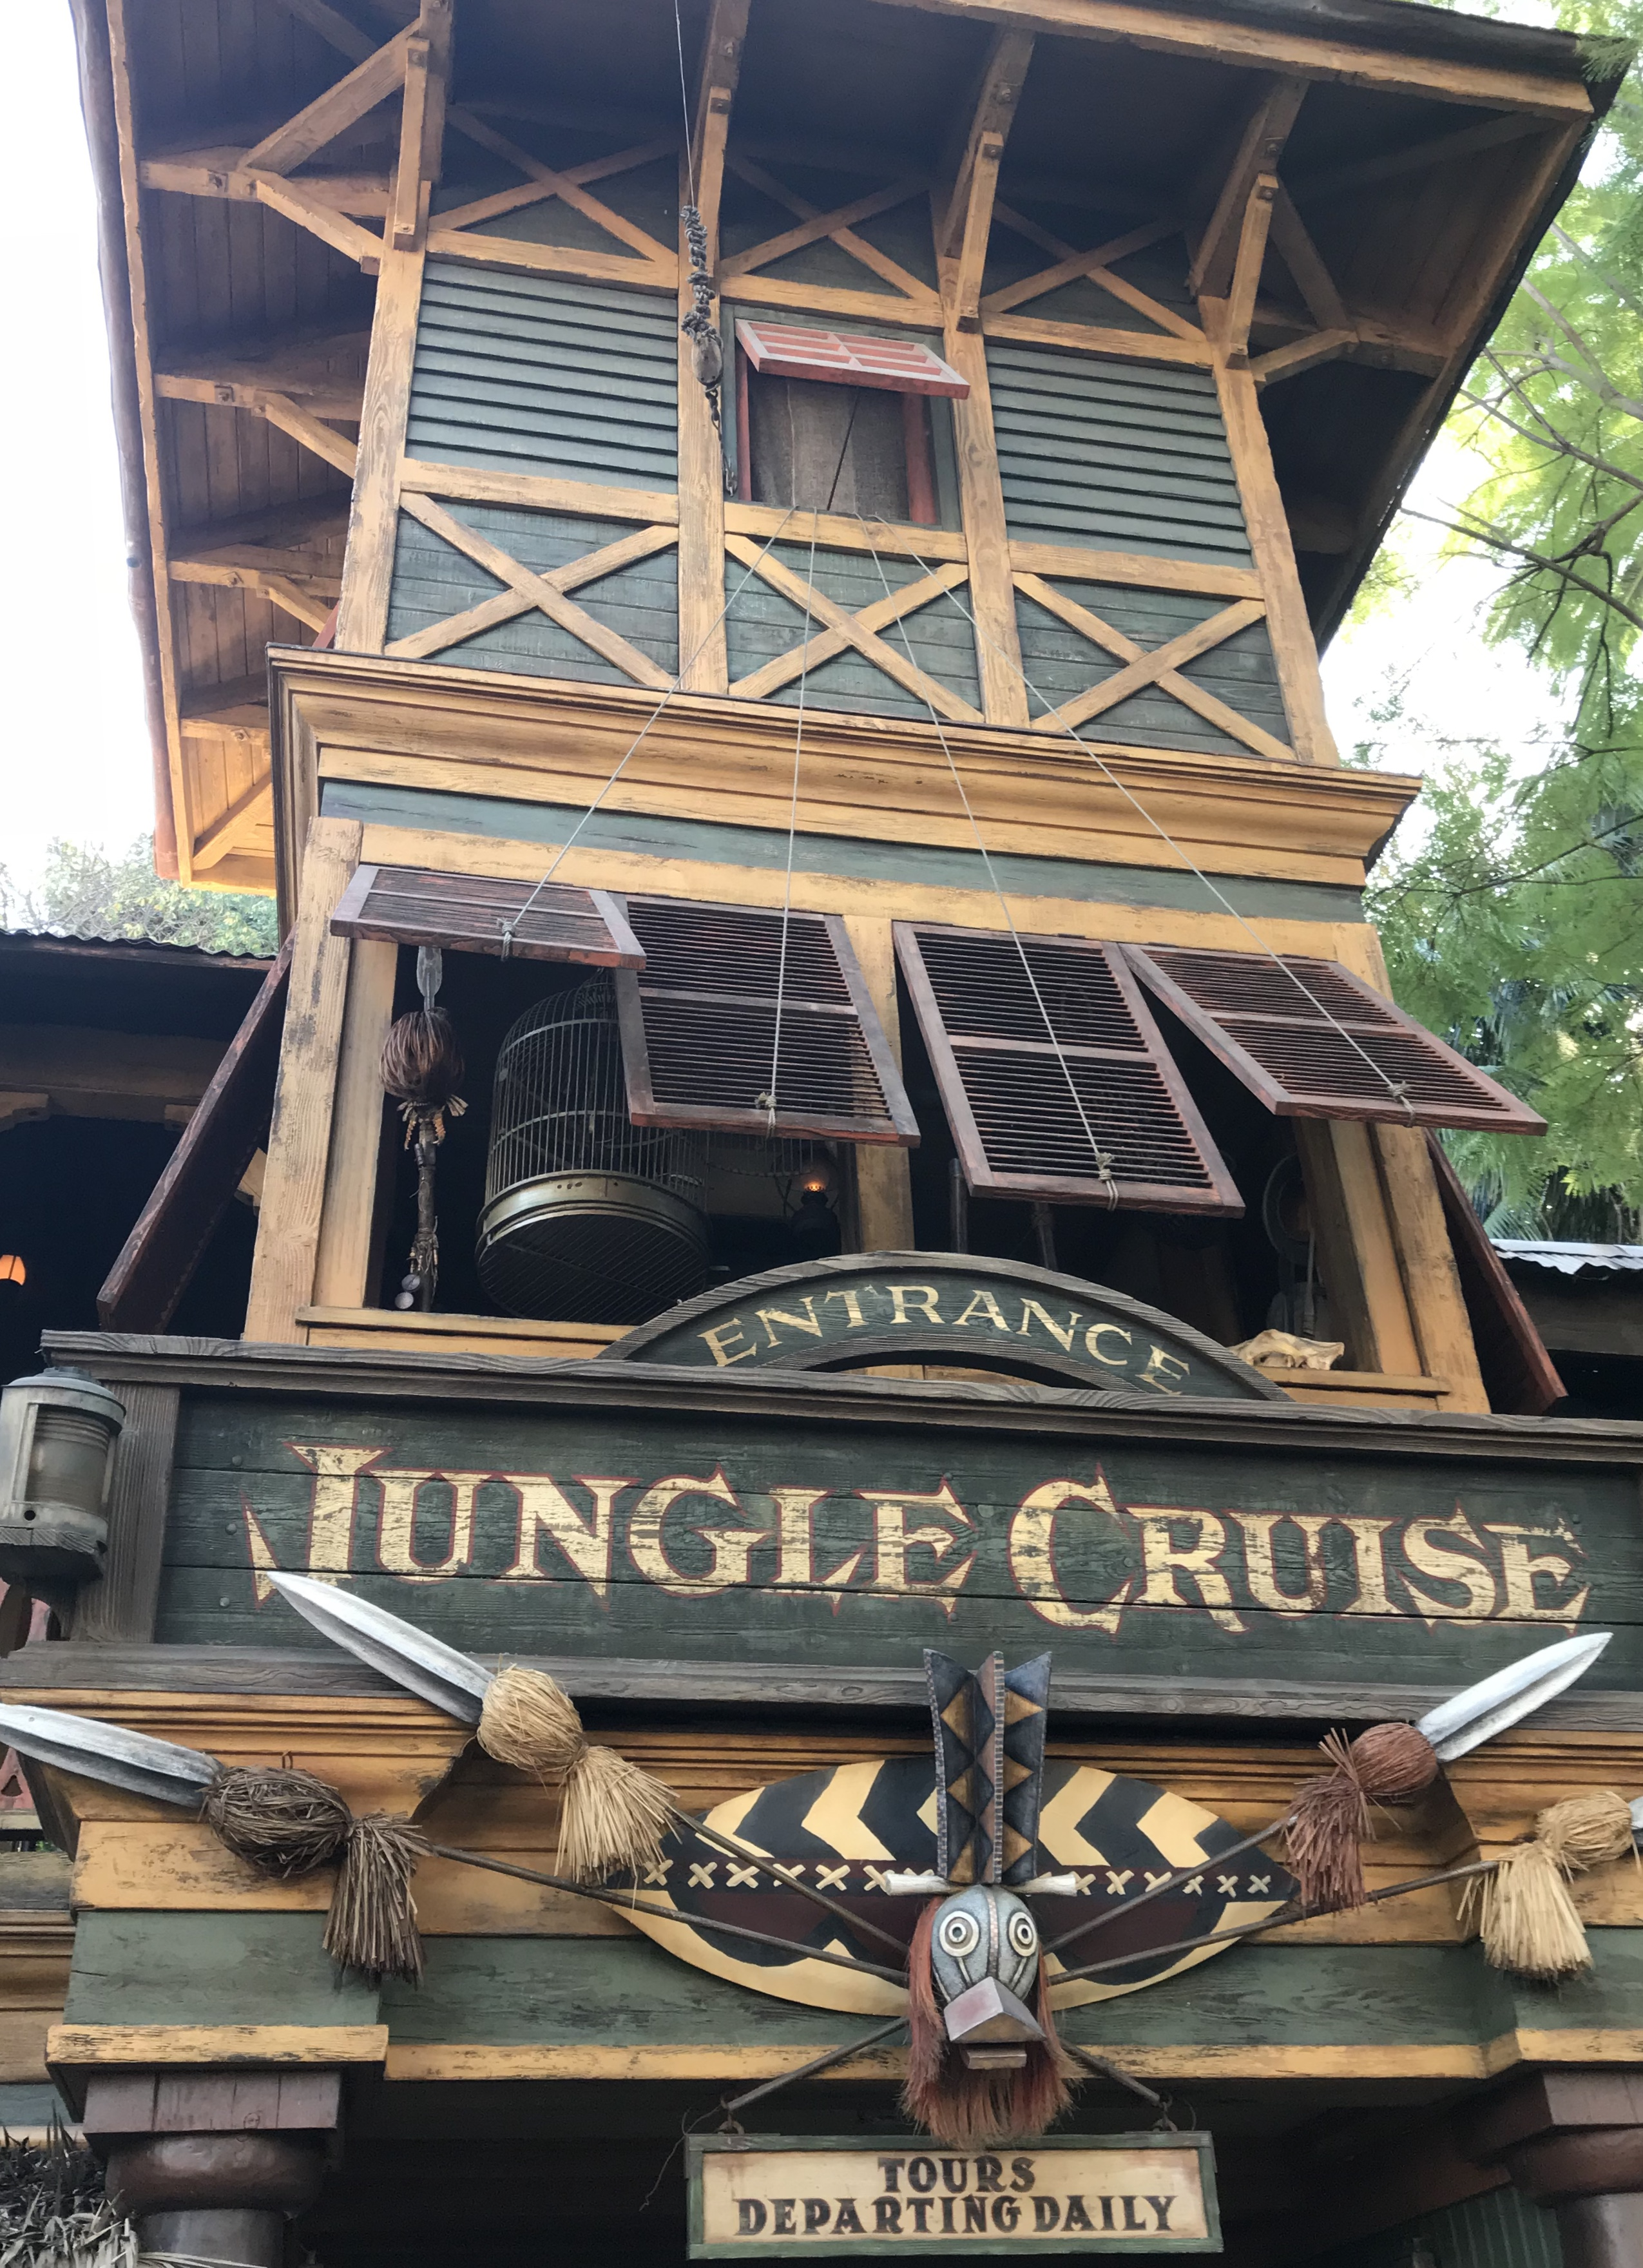 Outside of the Jungle Cruise attraction